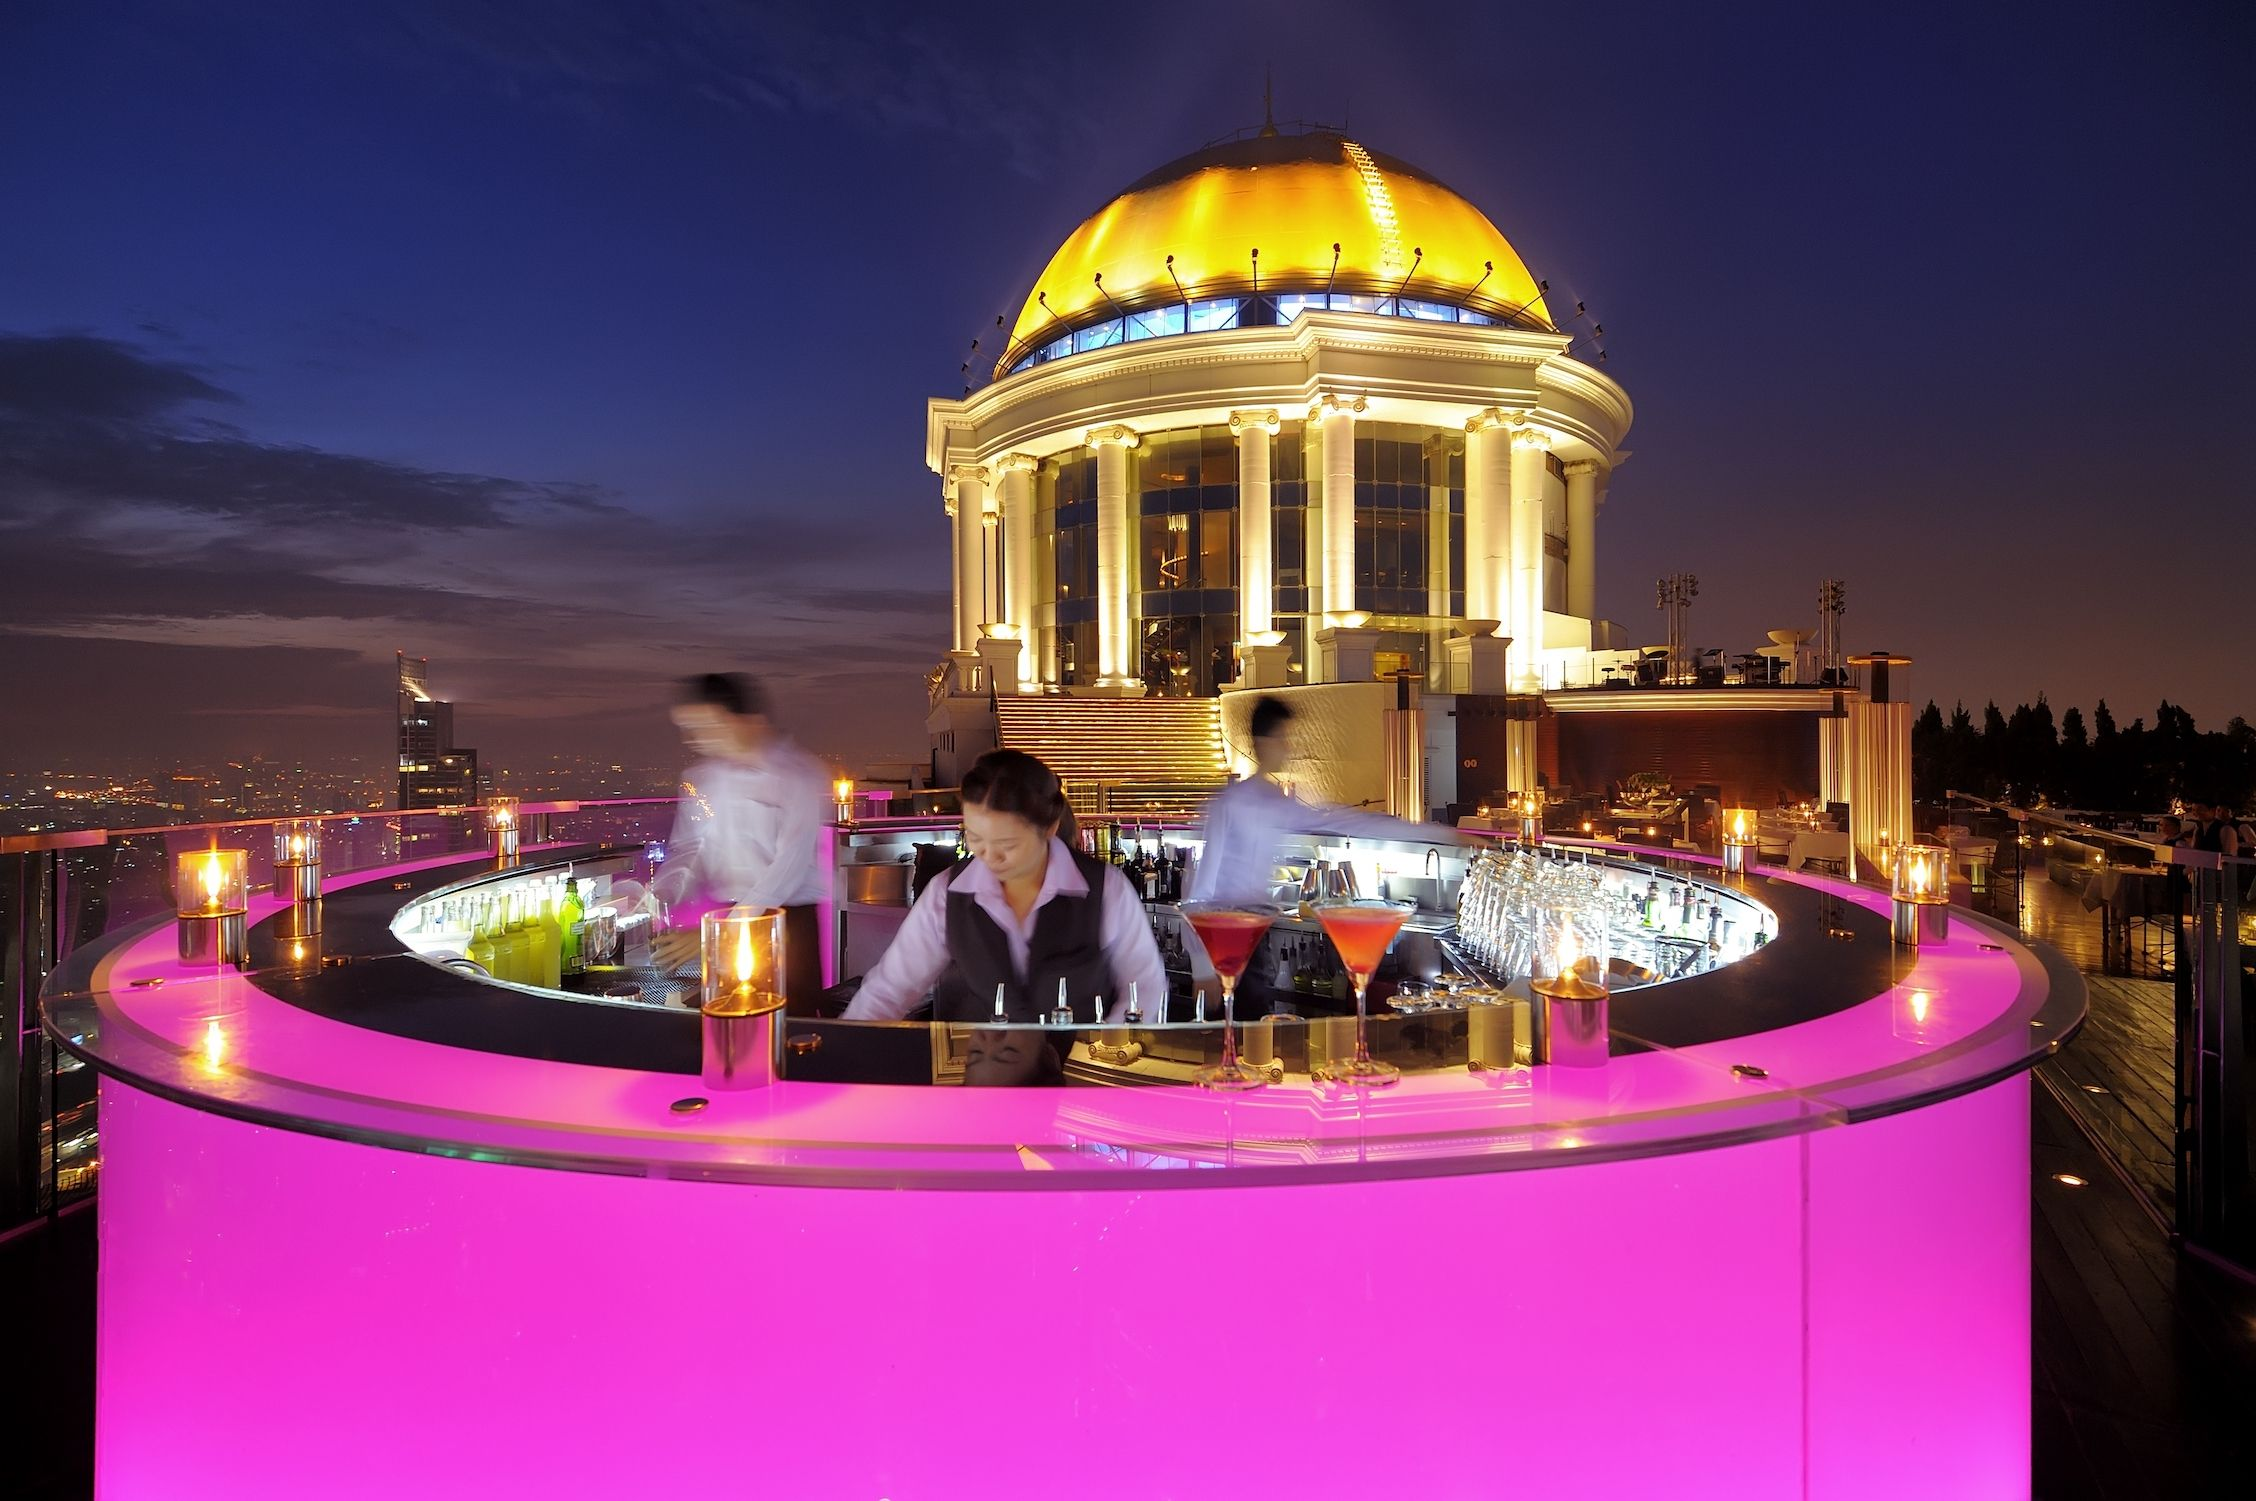 pink light bar by edge of terrace and yellow dome in background